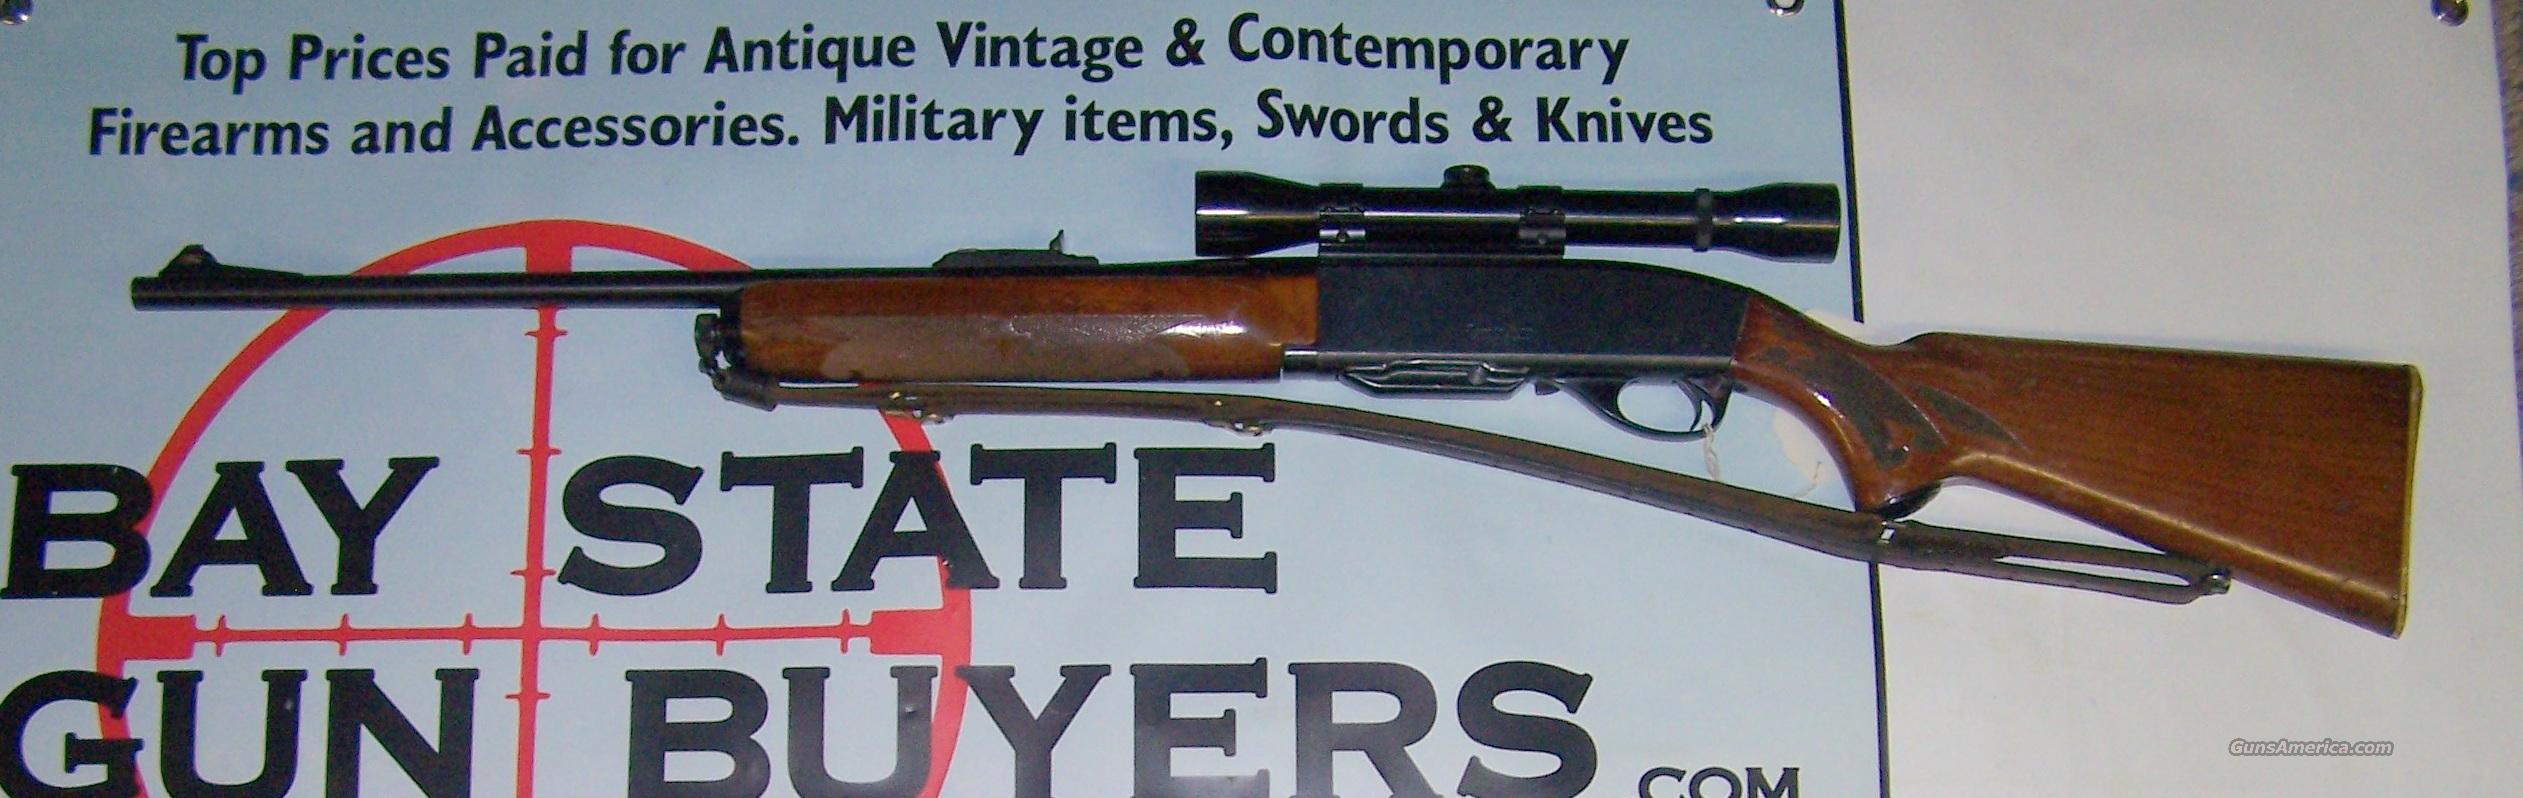 Remington Woodsmaster 742 30-06 SPRG  Guns > Rifles > Remington Rifles - Modern > Other